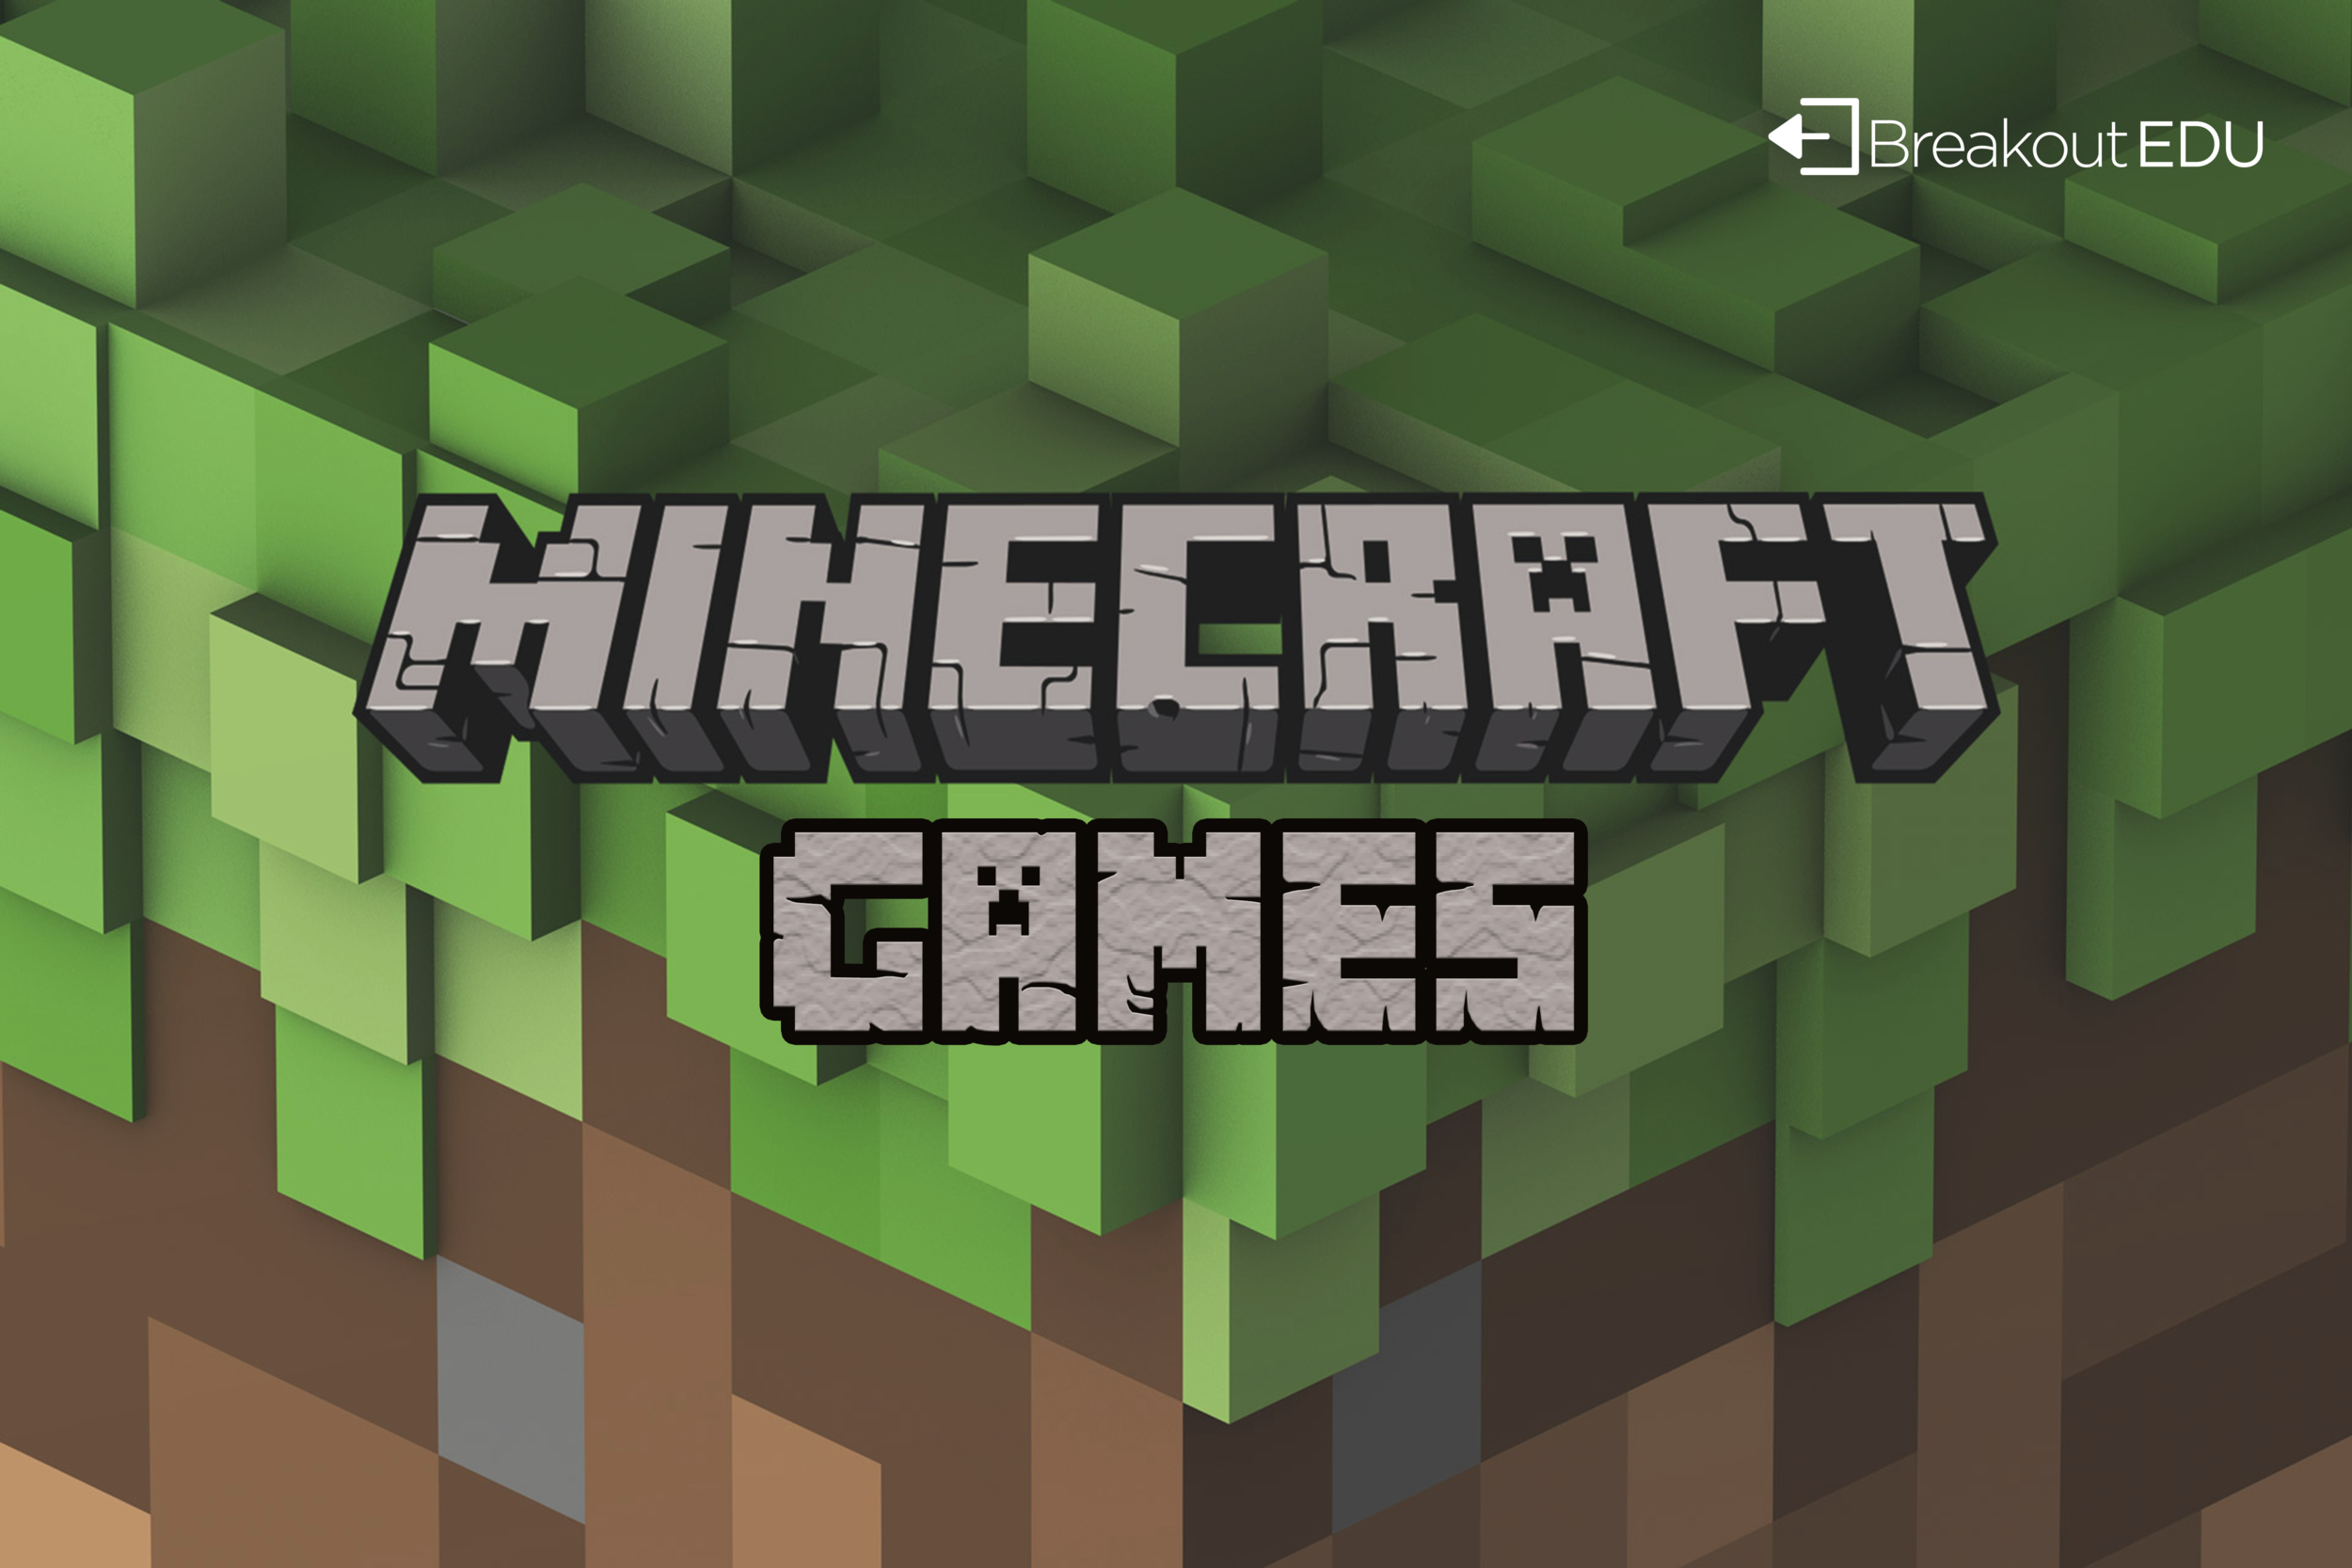 minecraftgames.png